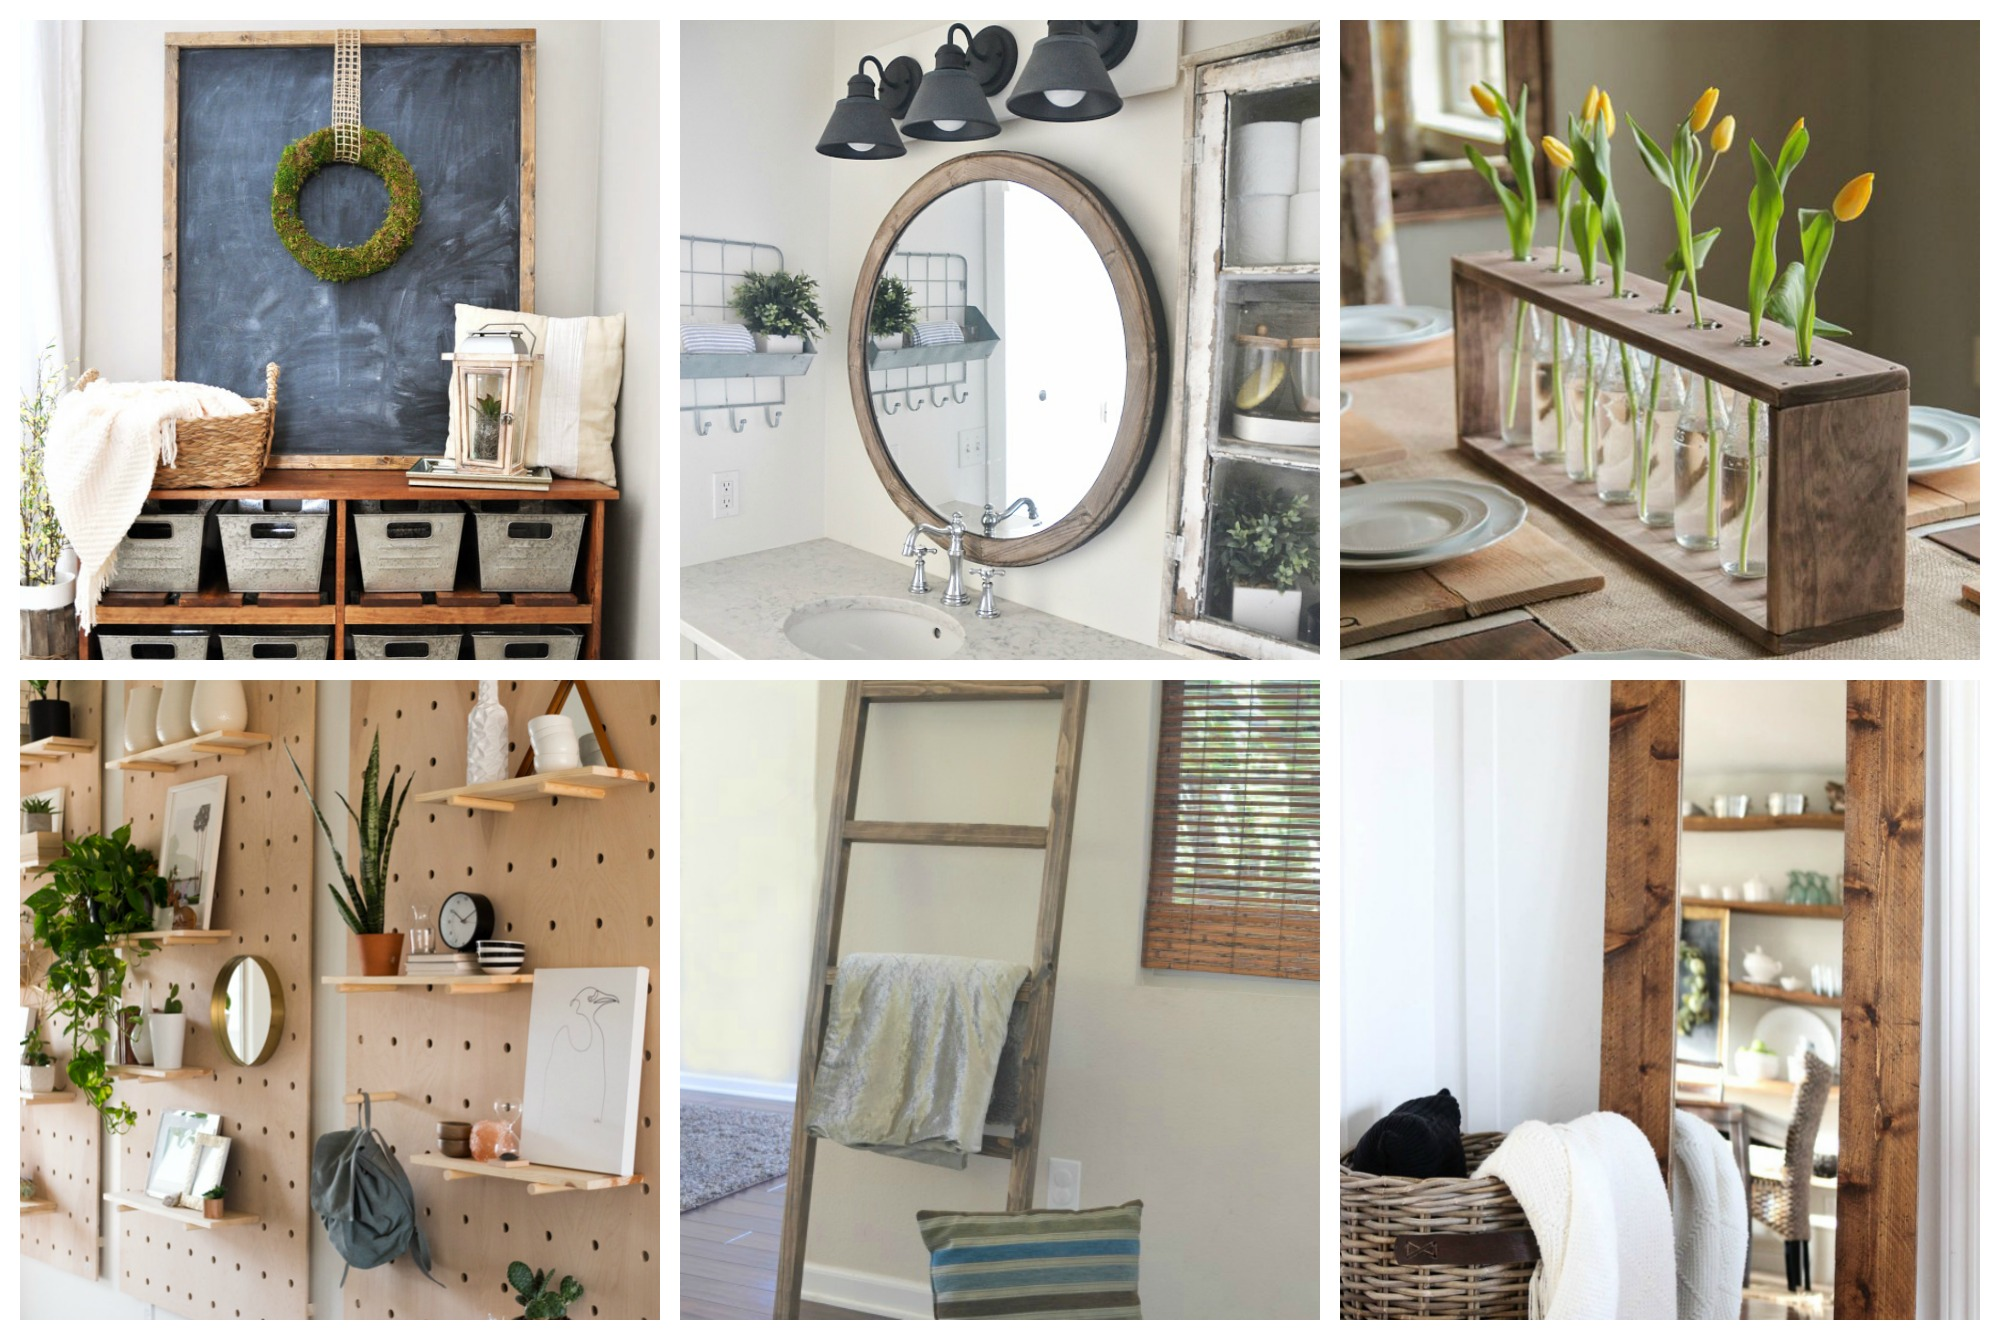 BUDGET DIY HOME DECOR PROJECTS